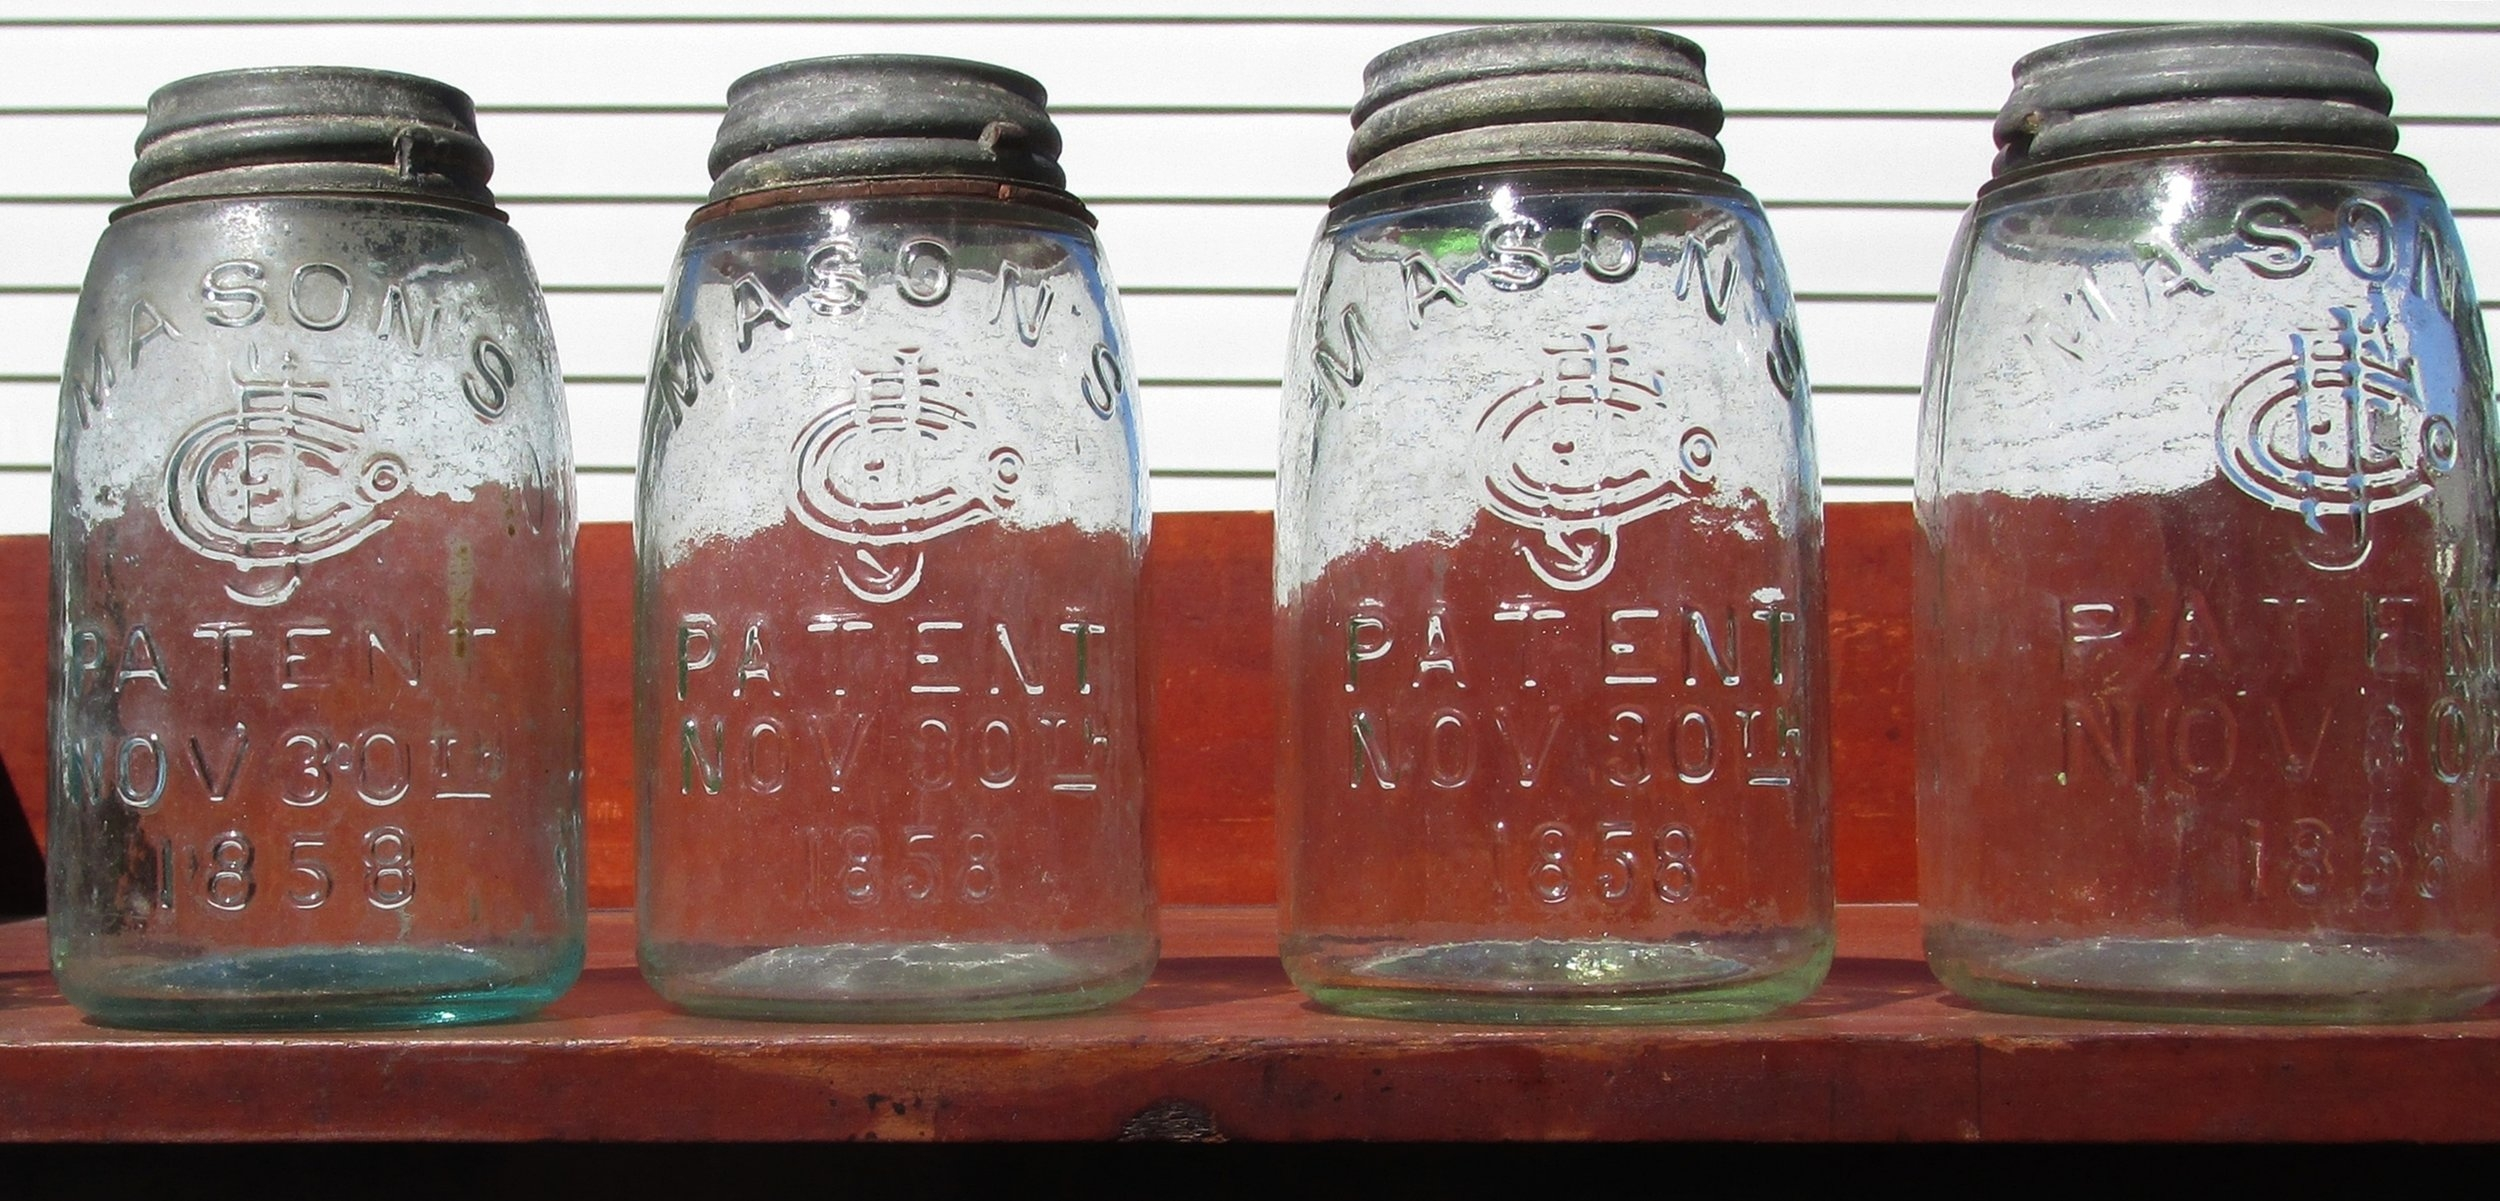 Mason Jars:  Among the many remarkable items in the holdings of the Historical Society are many home canning jars from the nineteenth and twentieth centuries, including some remarkable green jars from the mid-nineteenth century. These jars have all come from houses in the Carbondale area.